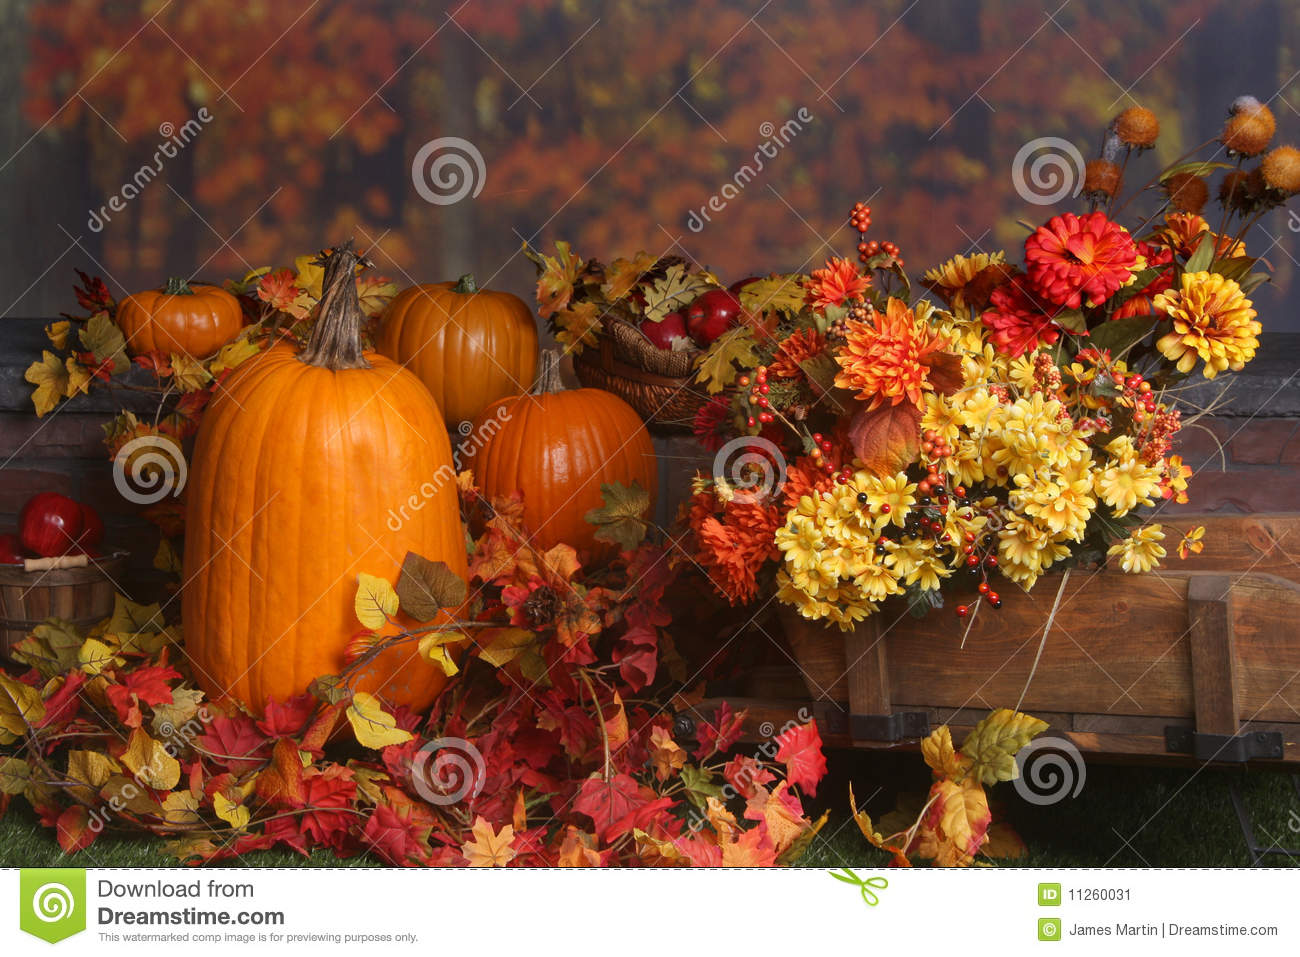 Fall Outdoor Decorations Wallpaper Fall Scene With Pumpkins And Colored Leaves Stock Image